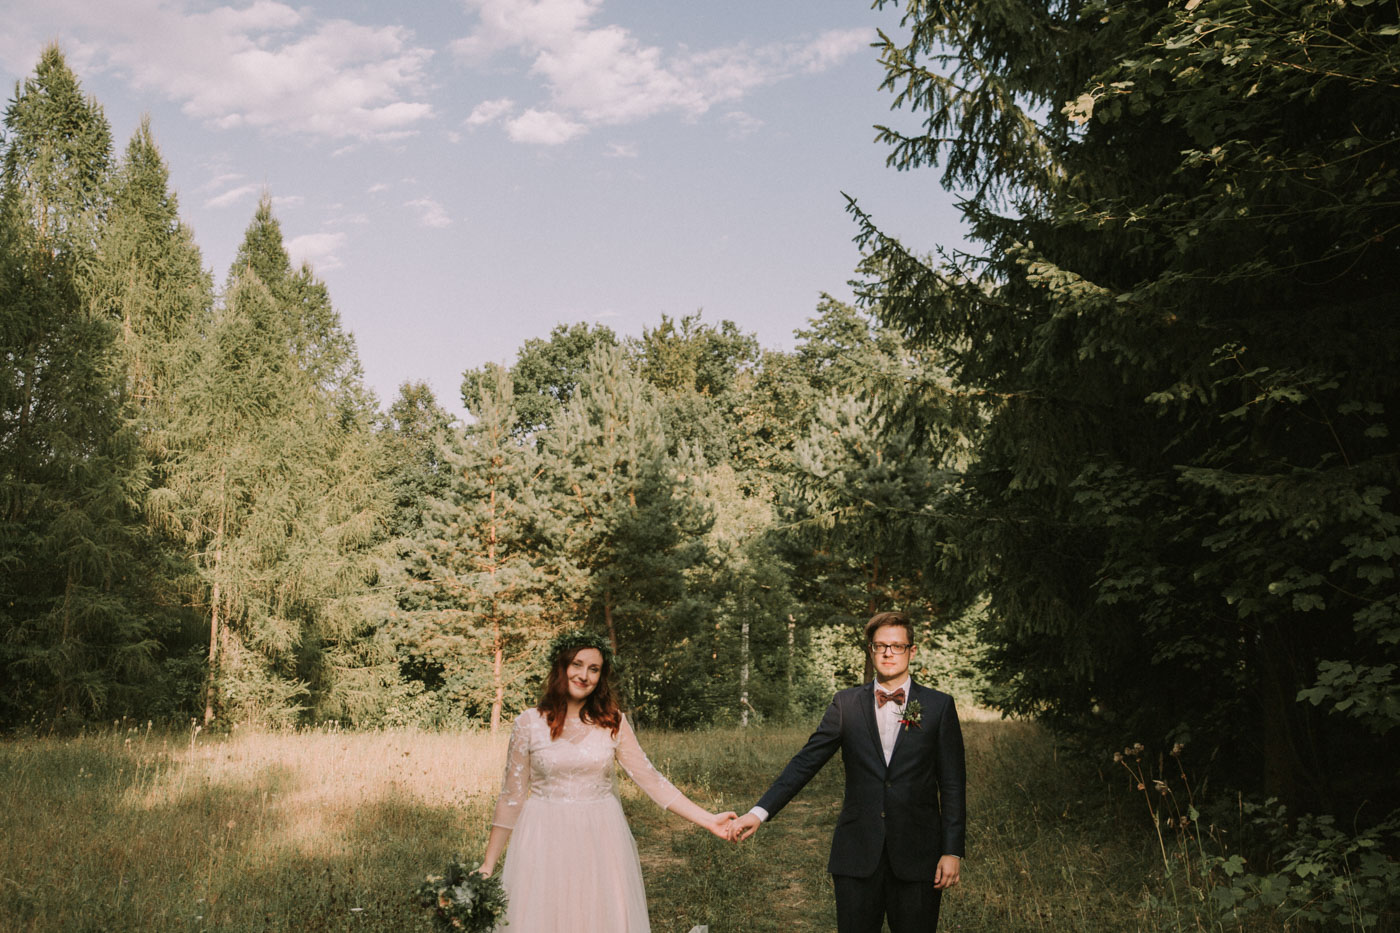 Bohemian woodland wedding photographer | Europe Destination Wedding Photography